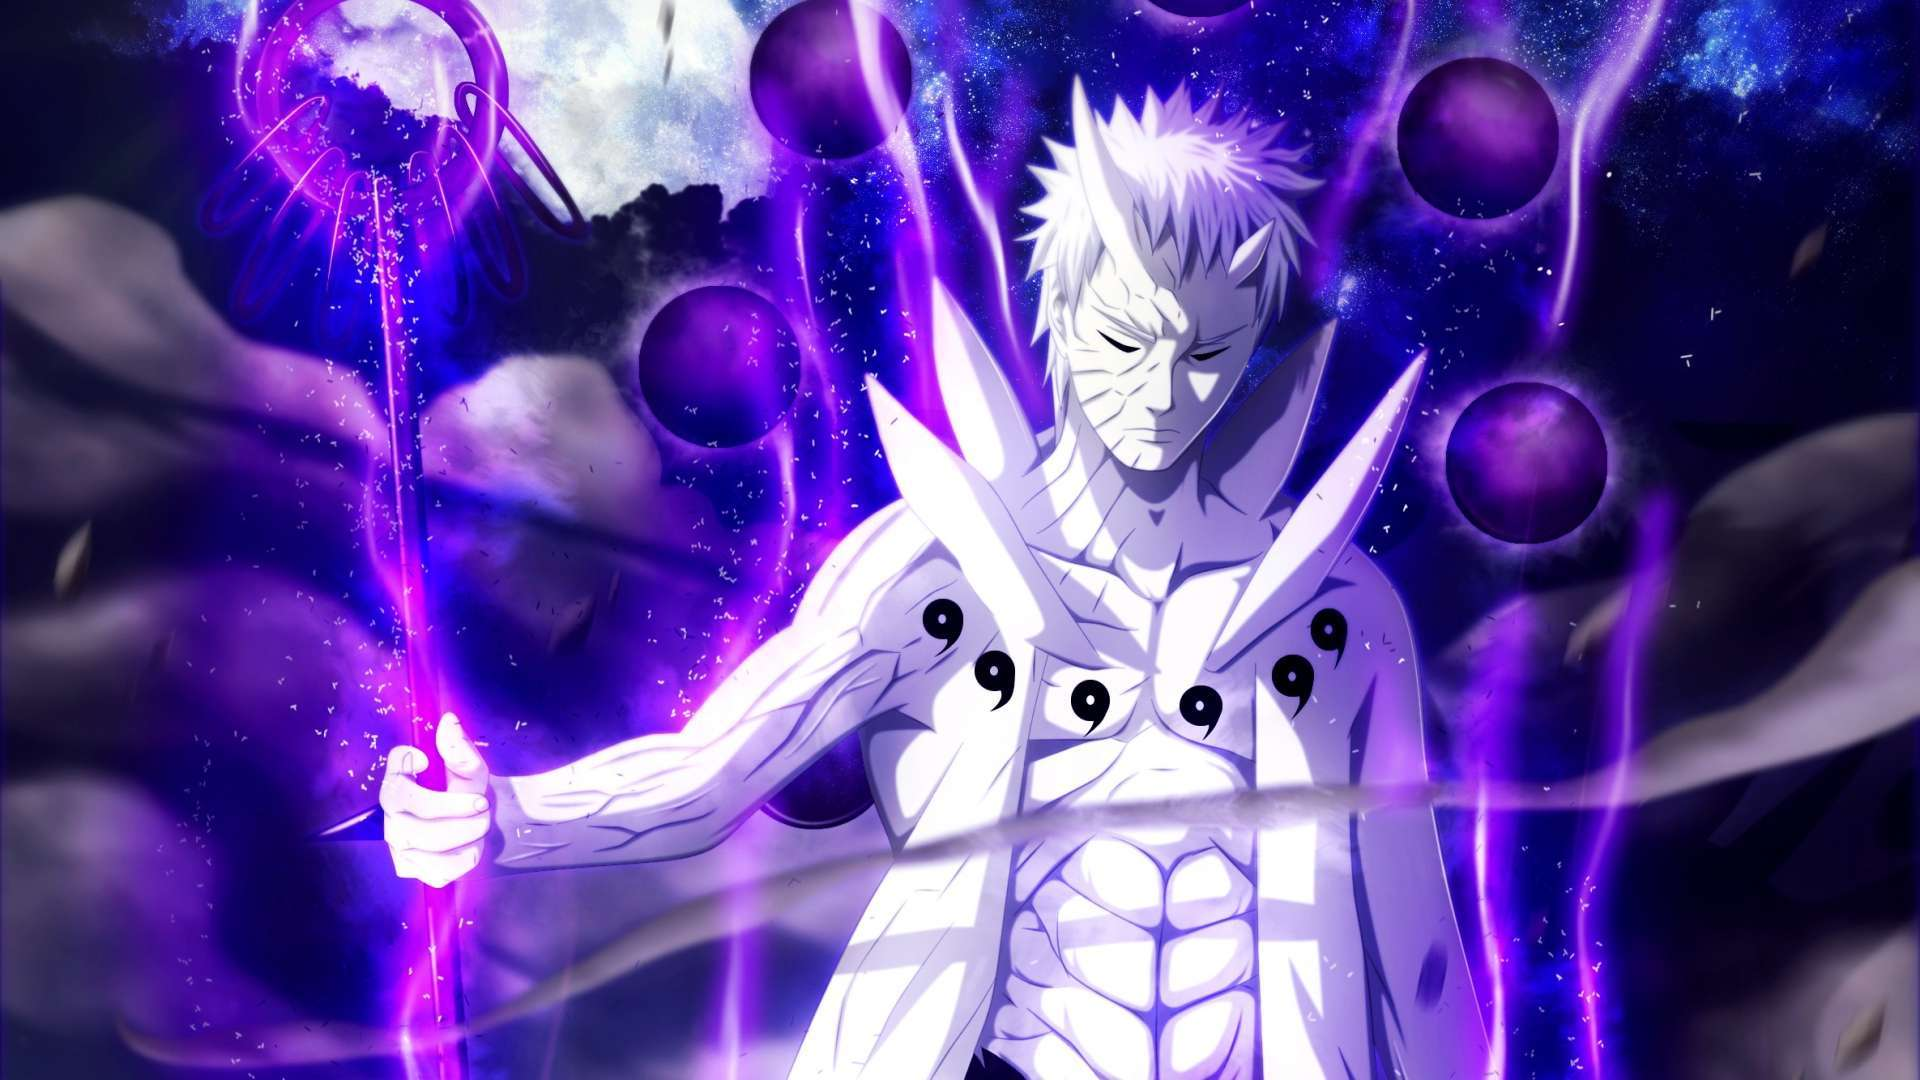 wallpaper anime naruto tobi uchiha obito desktop wallpaper 1080p